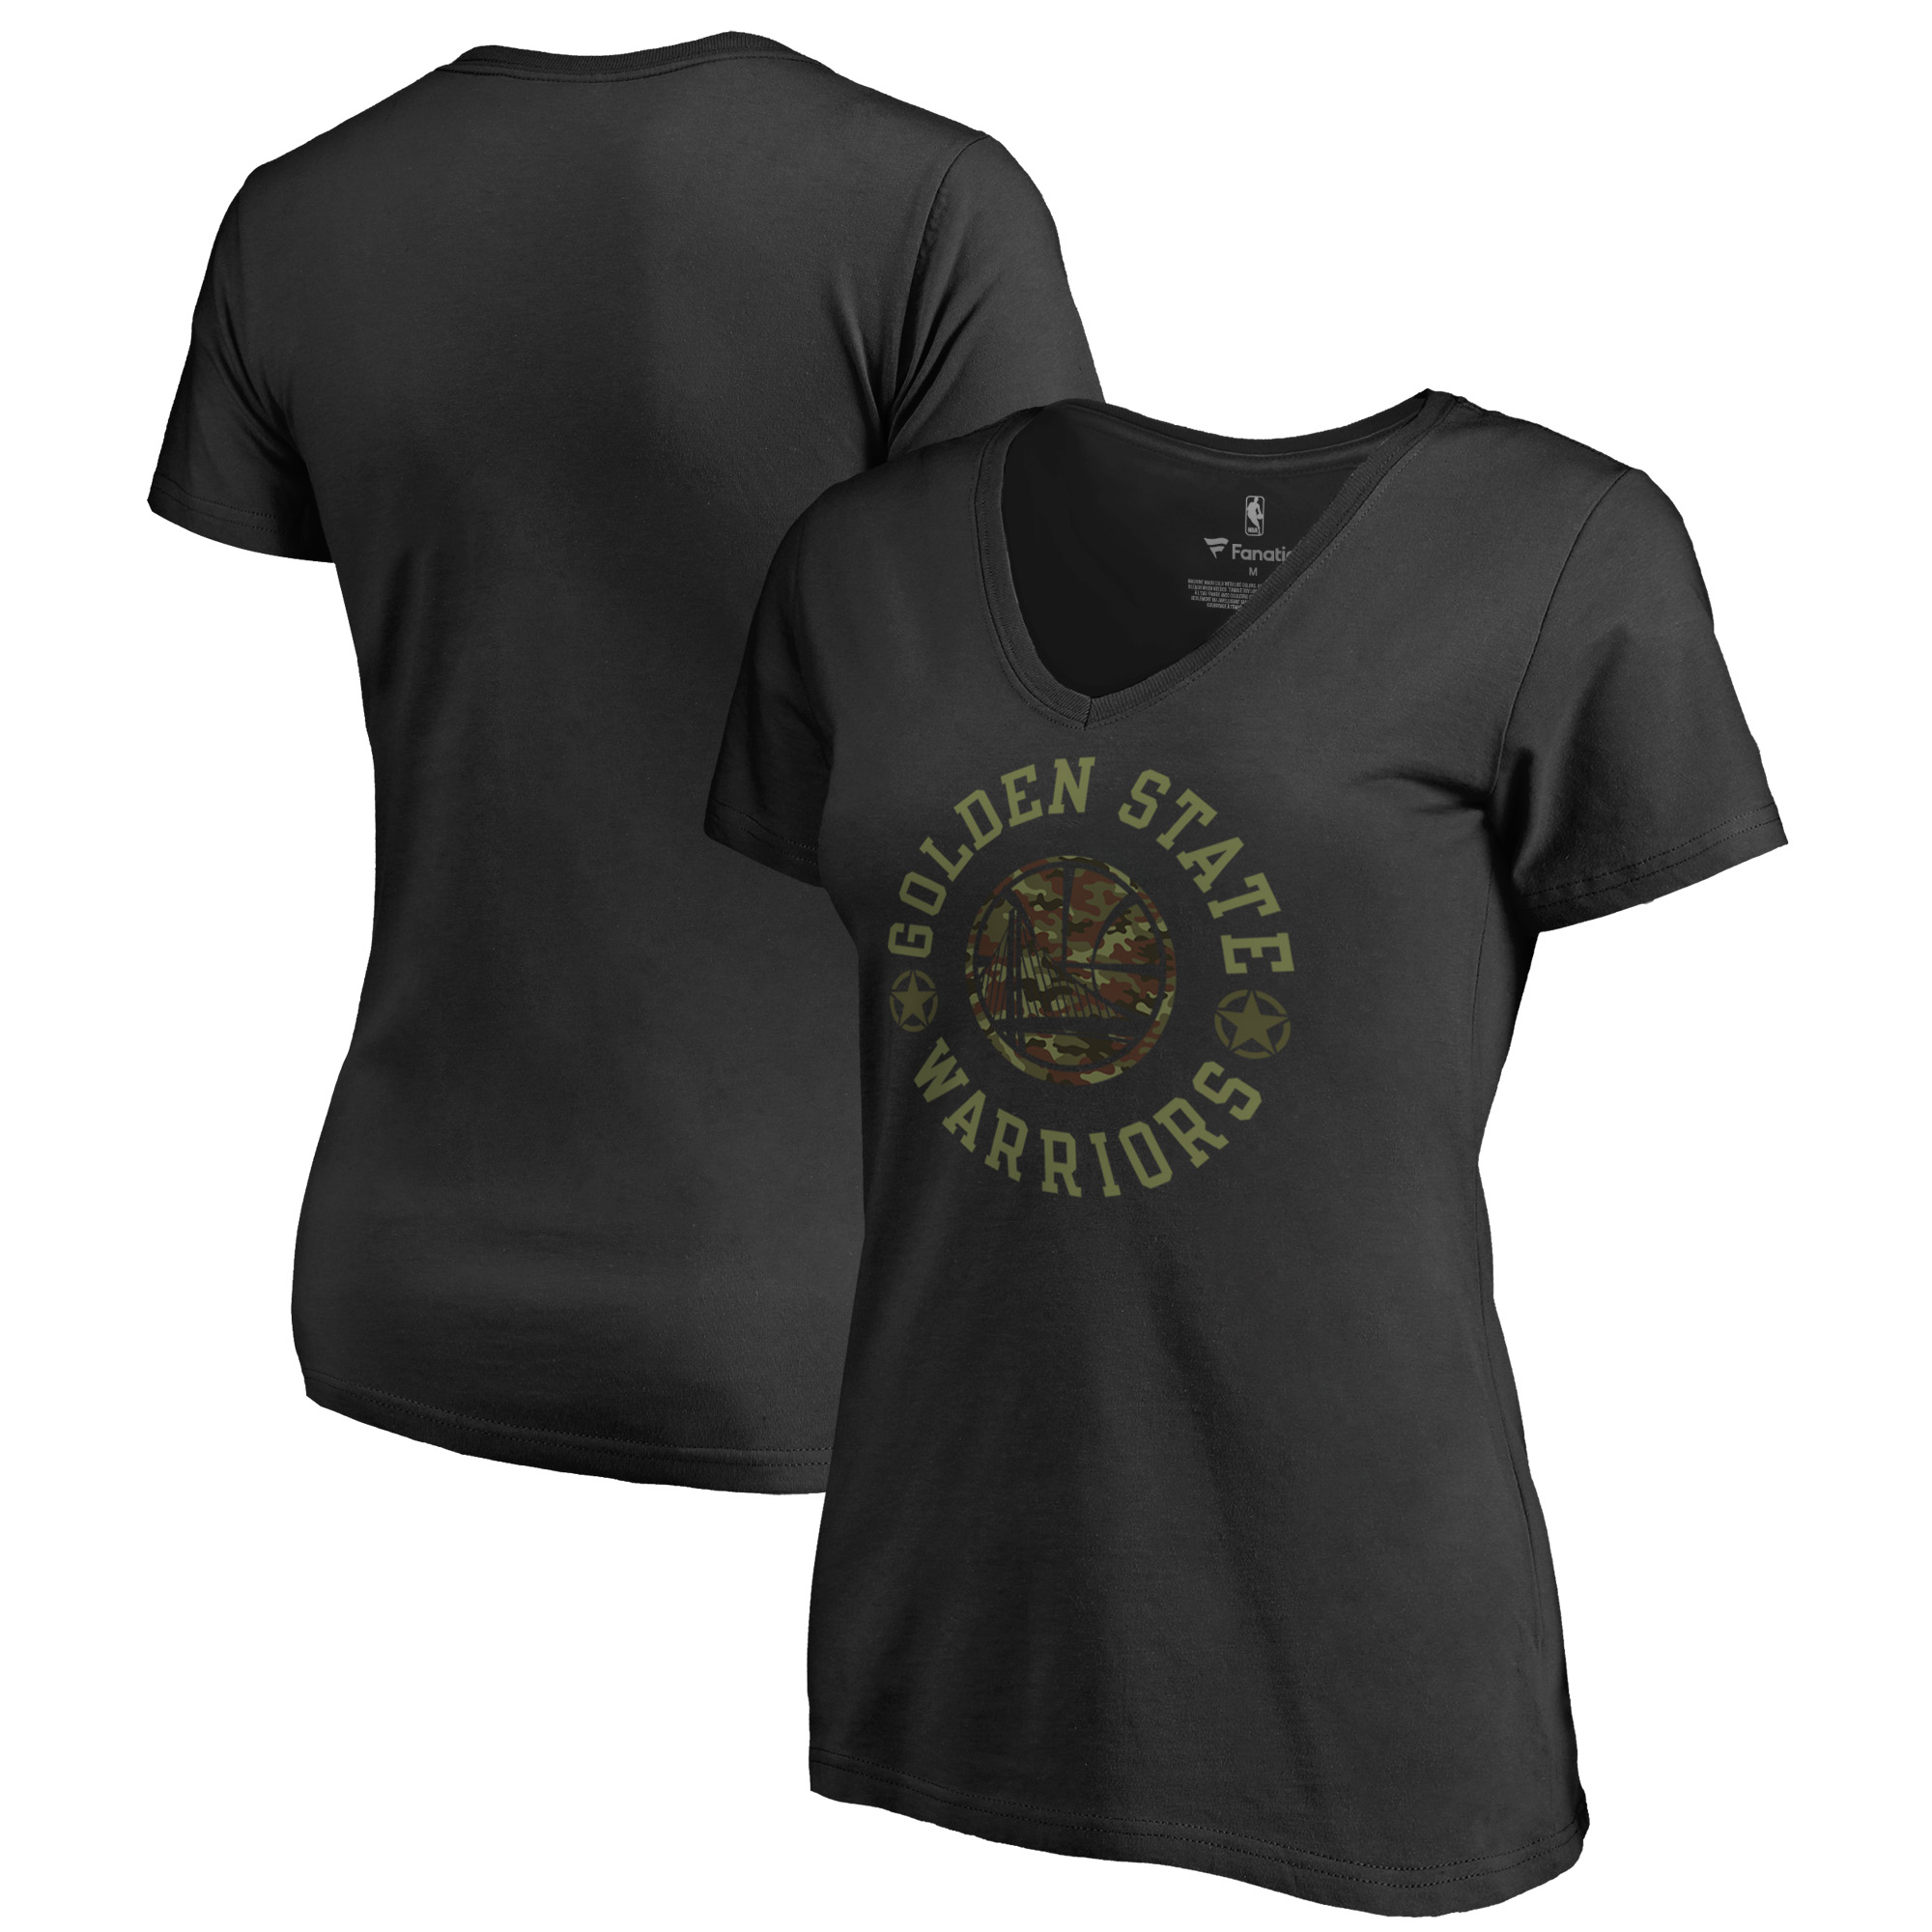 Golden State Warriors Fanatics Branded Women's Liberty V-Neck T-Shirt - Black